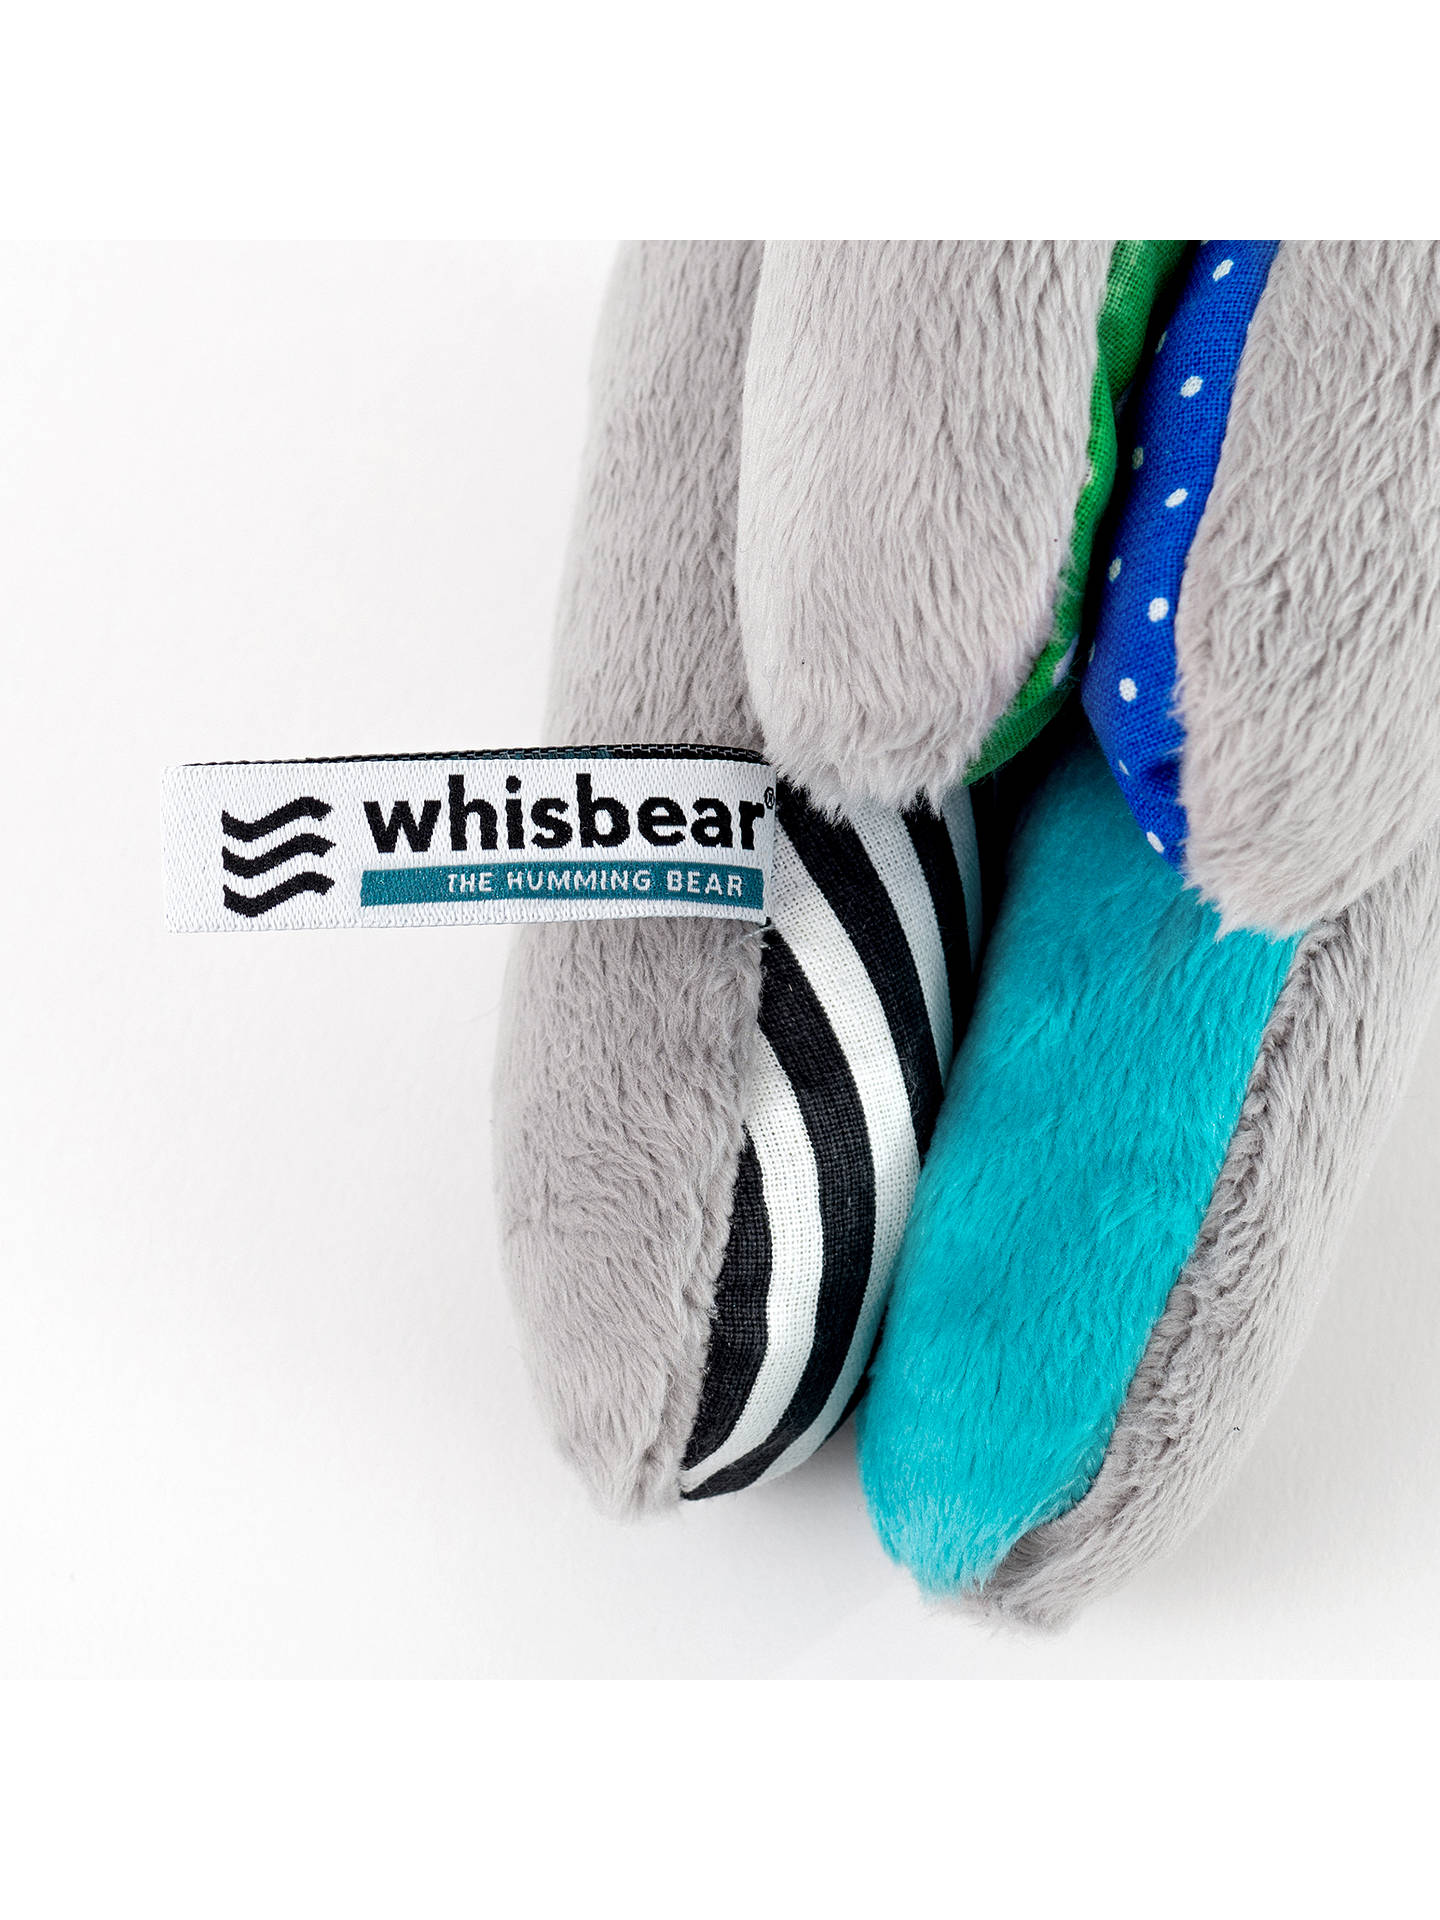 Whisbear The Humming Bear With Crysensor At John Lewis Partners 3 Way Switch Buywhisbear Online